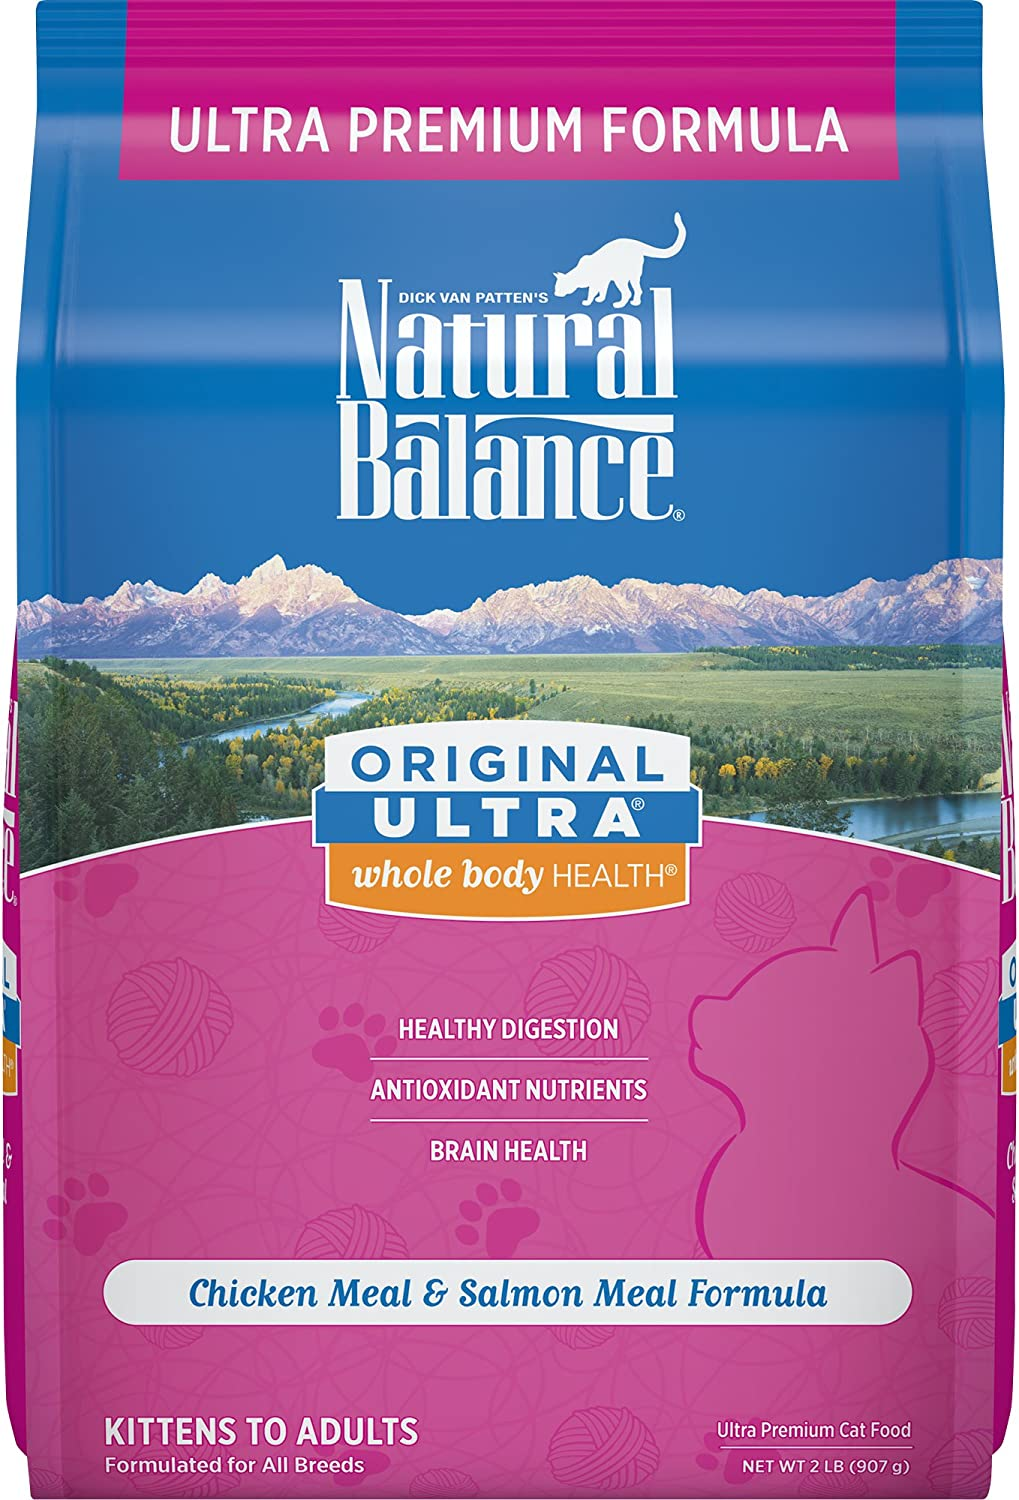 Natural Balance Original Ultra Whole Body Health Dry Cat Food, Chicken Meal & Salmon Meal Formula, 2 Pounds